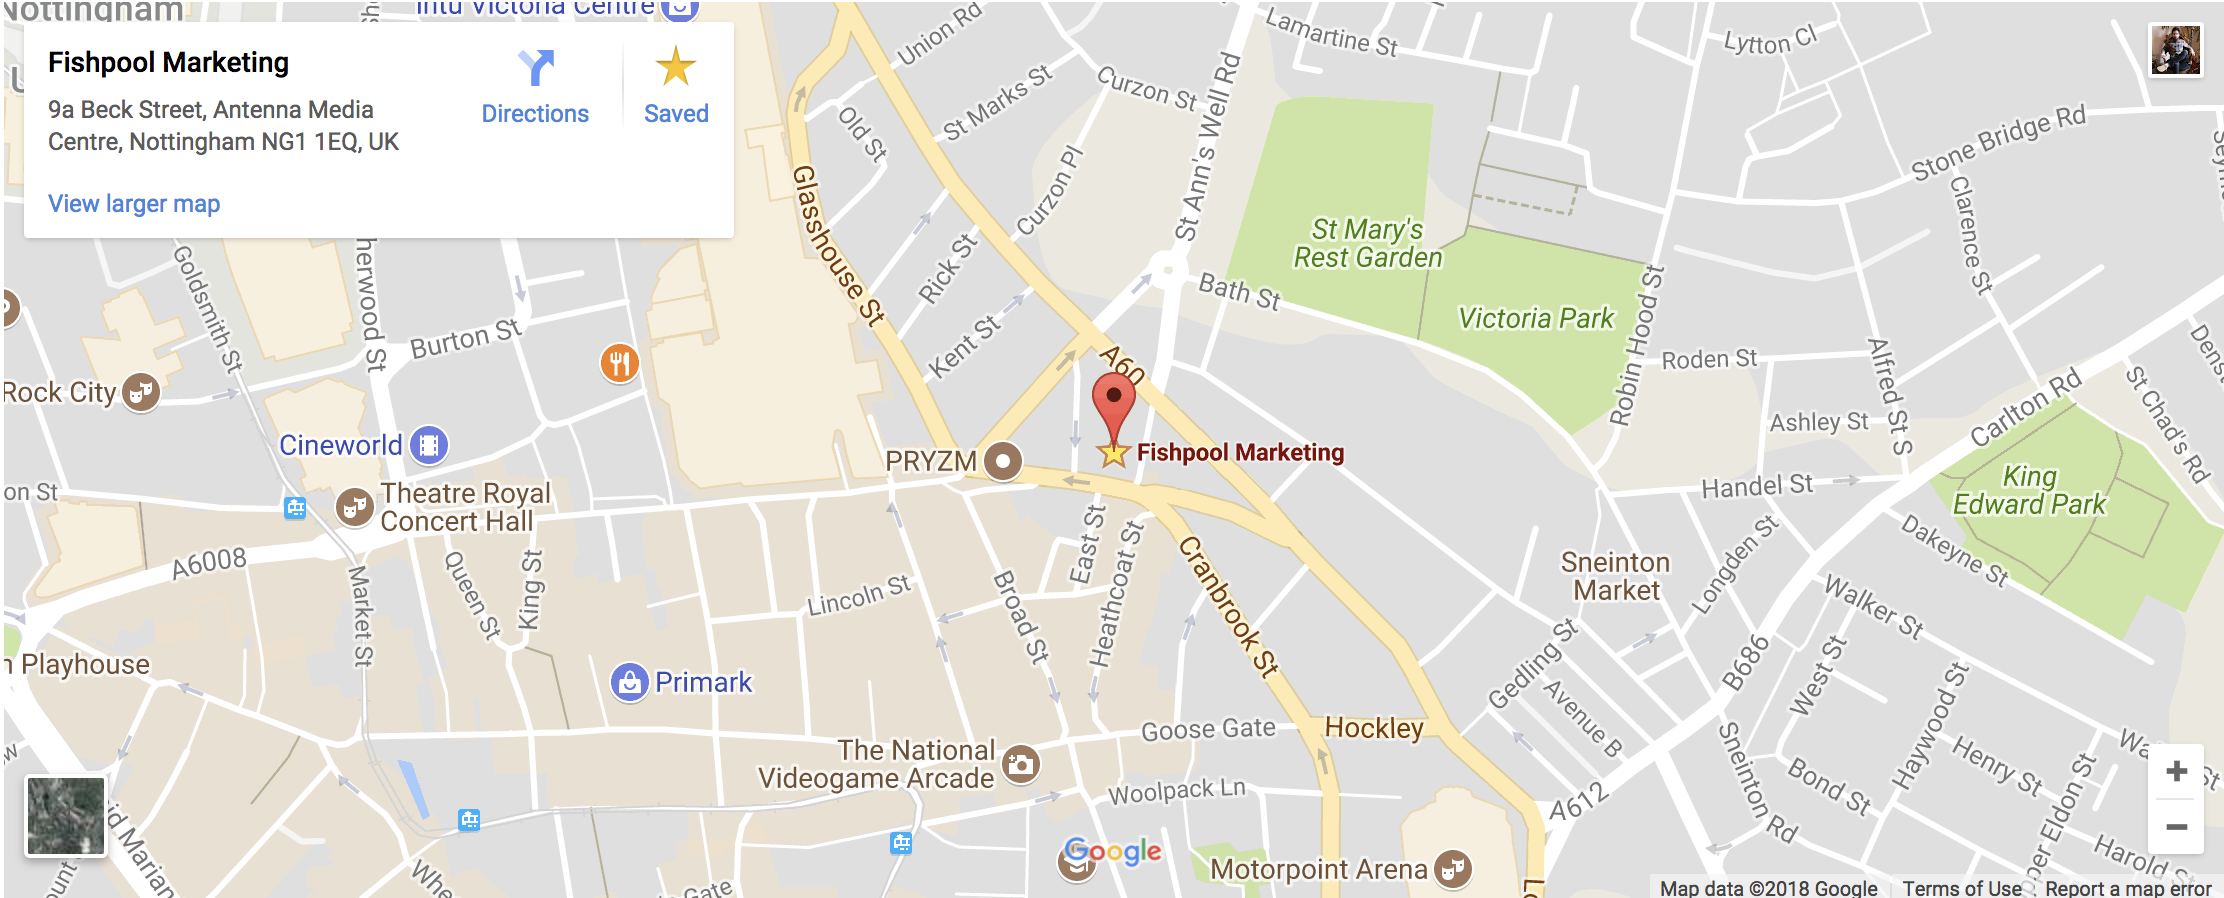 Fishpool-Marketing-Nottingham-UK-HQ